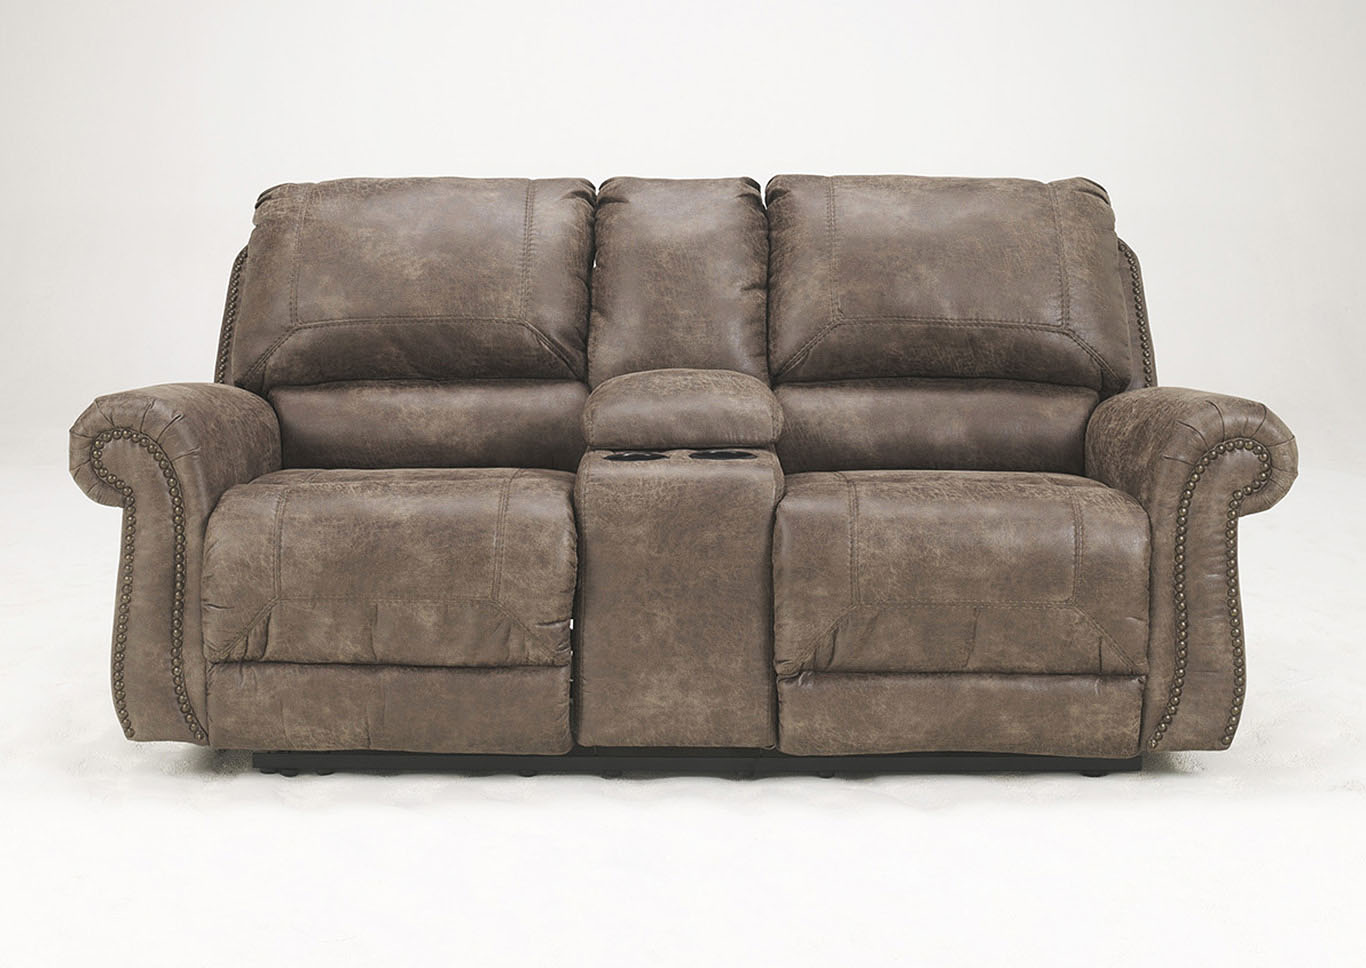 Oberson Gunsmoke Double Power Reclining Loveseat,Signature Design By Ashley